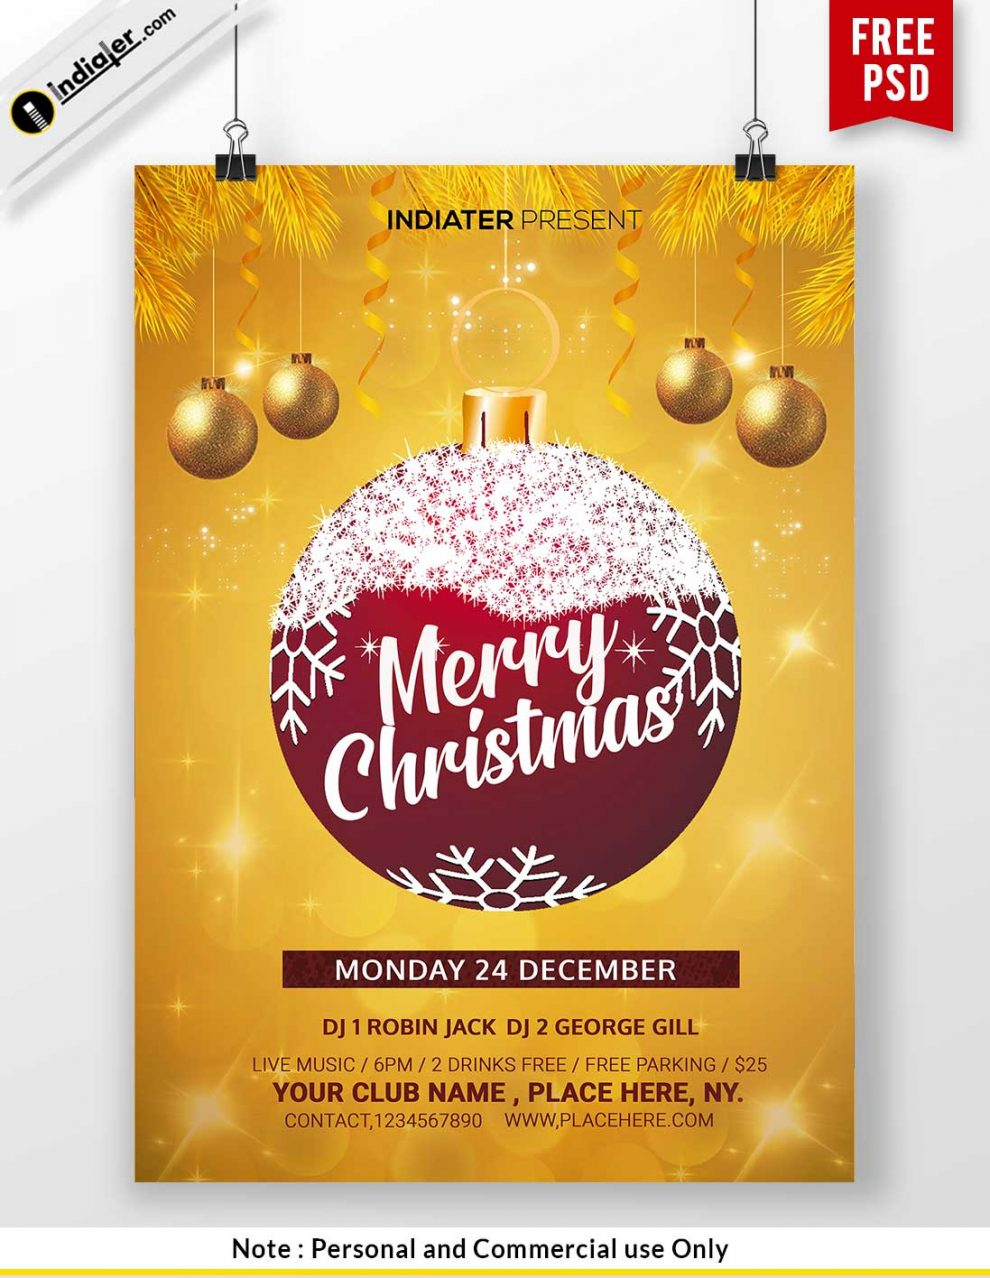 Free Merry Christmas Party Invitation Templates PSD Indiater